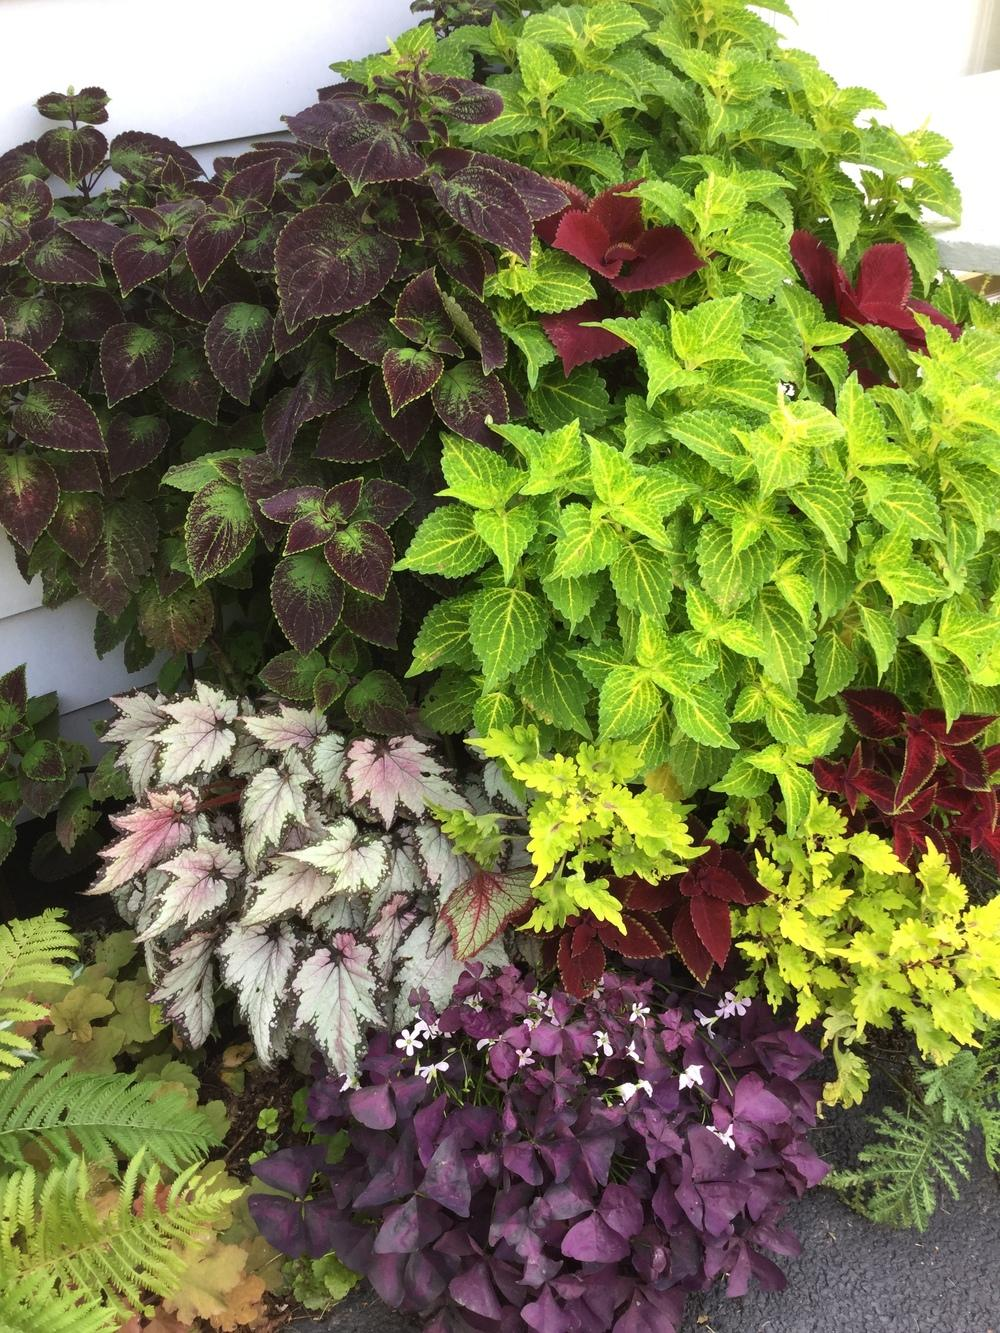 The Coleus Plant Is It A Annual Or Perennial